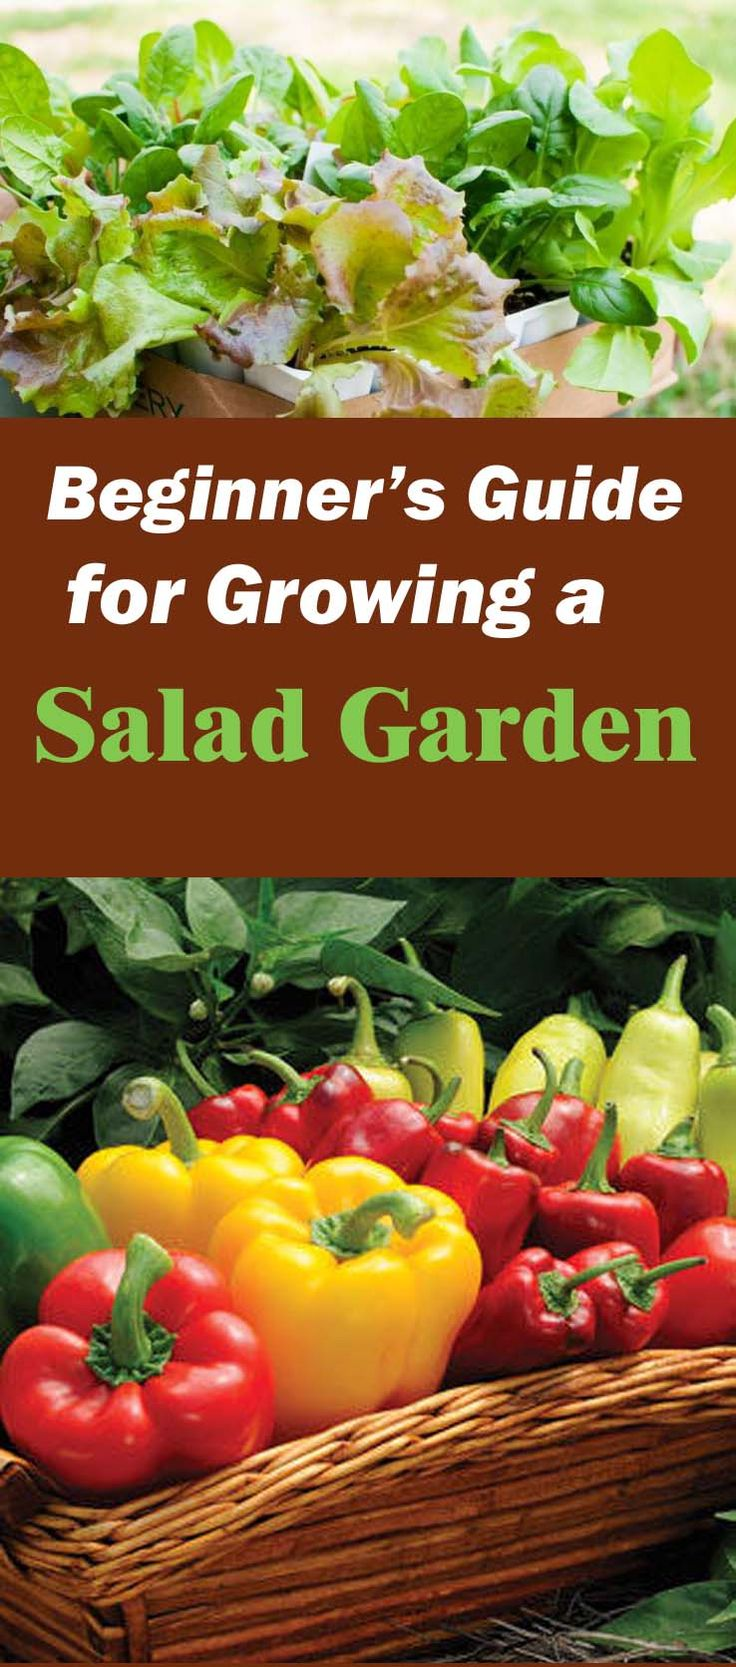 25 best ideas about growing peppers on pinterest growing vegetables tomato garden and epsom - Salads can grow pots eat fresh ...